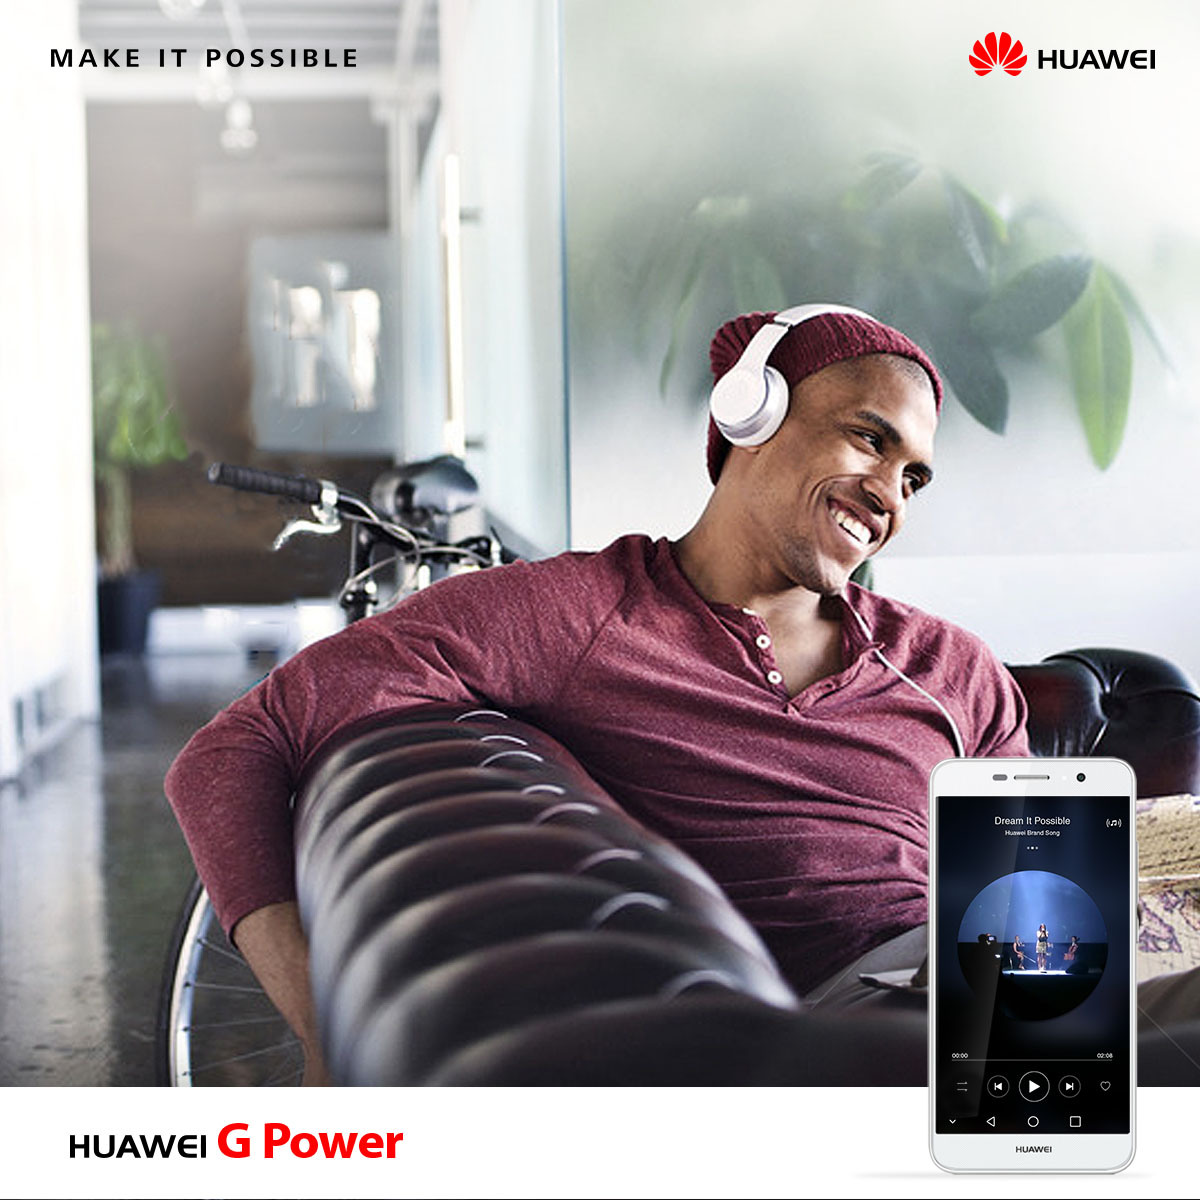 Lost in the music Gpower 2